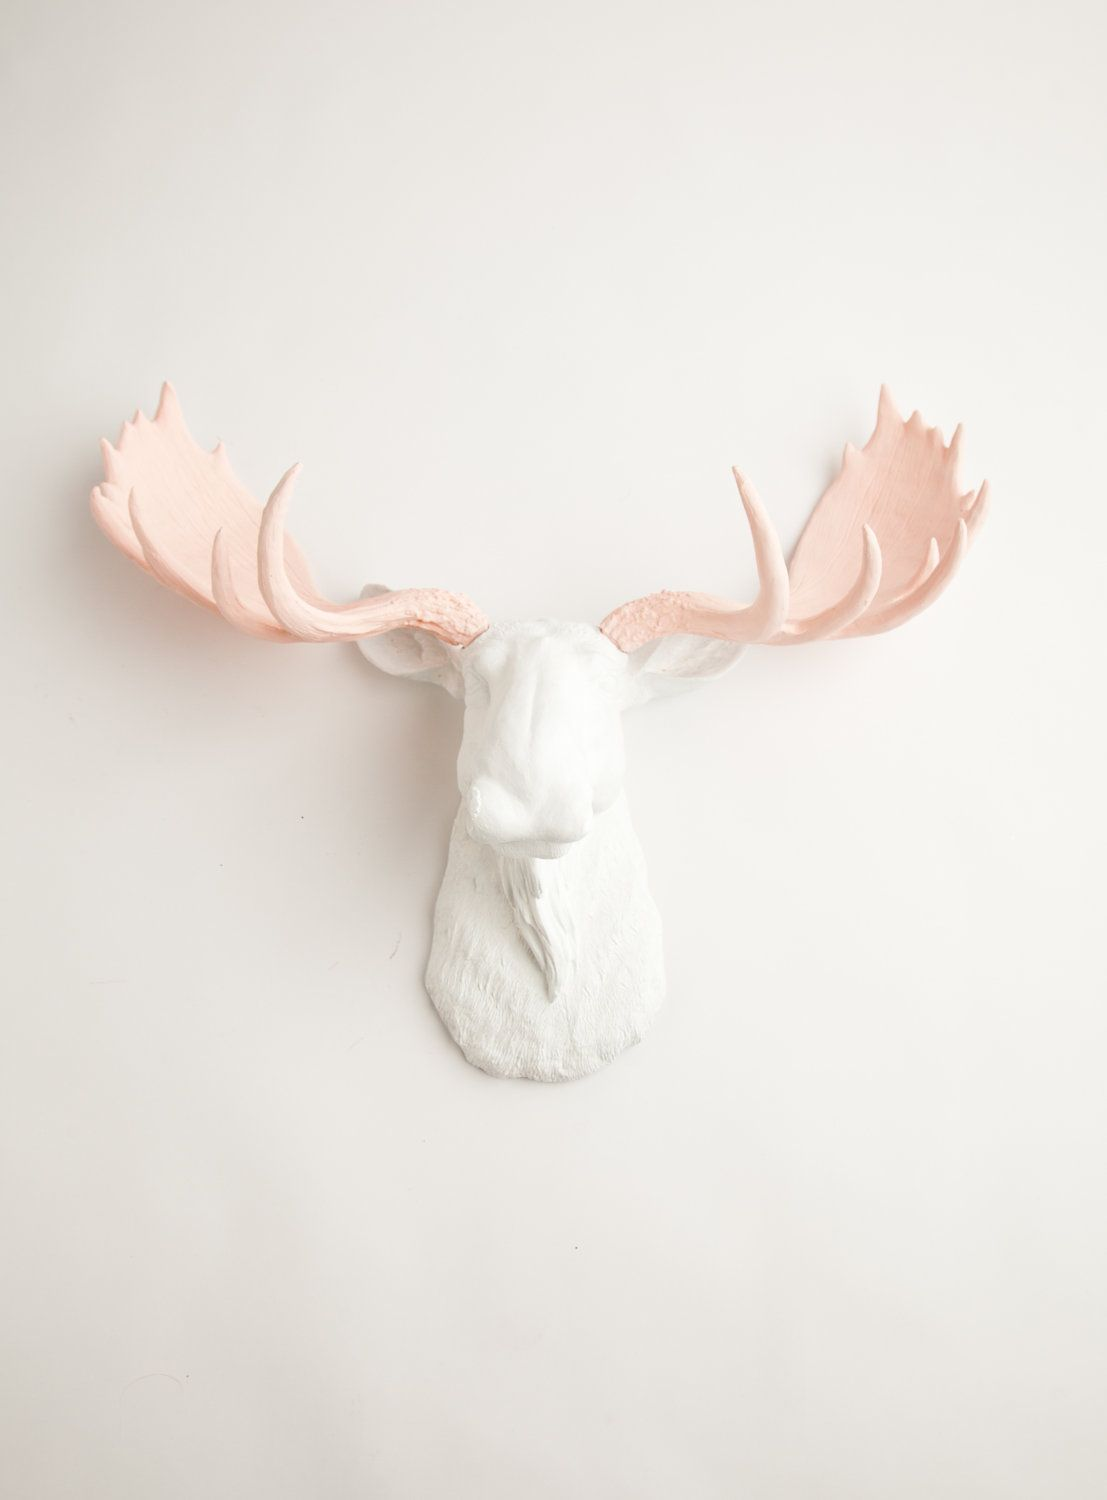 The Anita White W Cameo Pink Antlers Resin Moose Head Moose Resin White Faux Taxidermy Chic Trendy Moose Head Faux Taxidermy Moose Decor